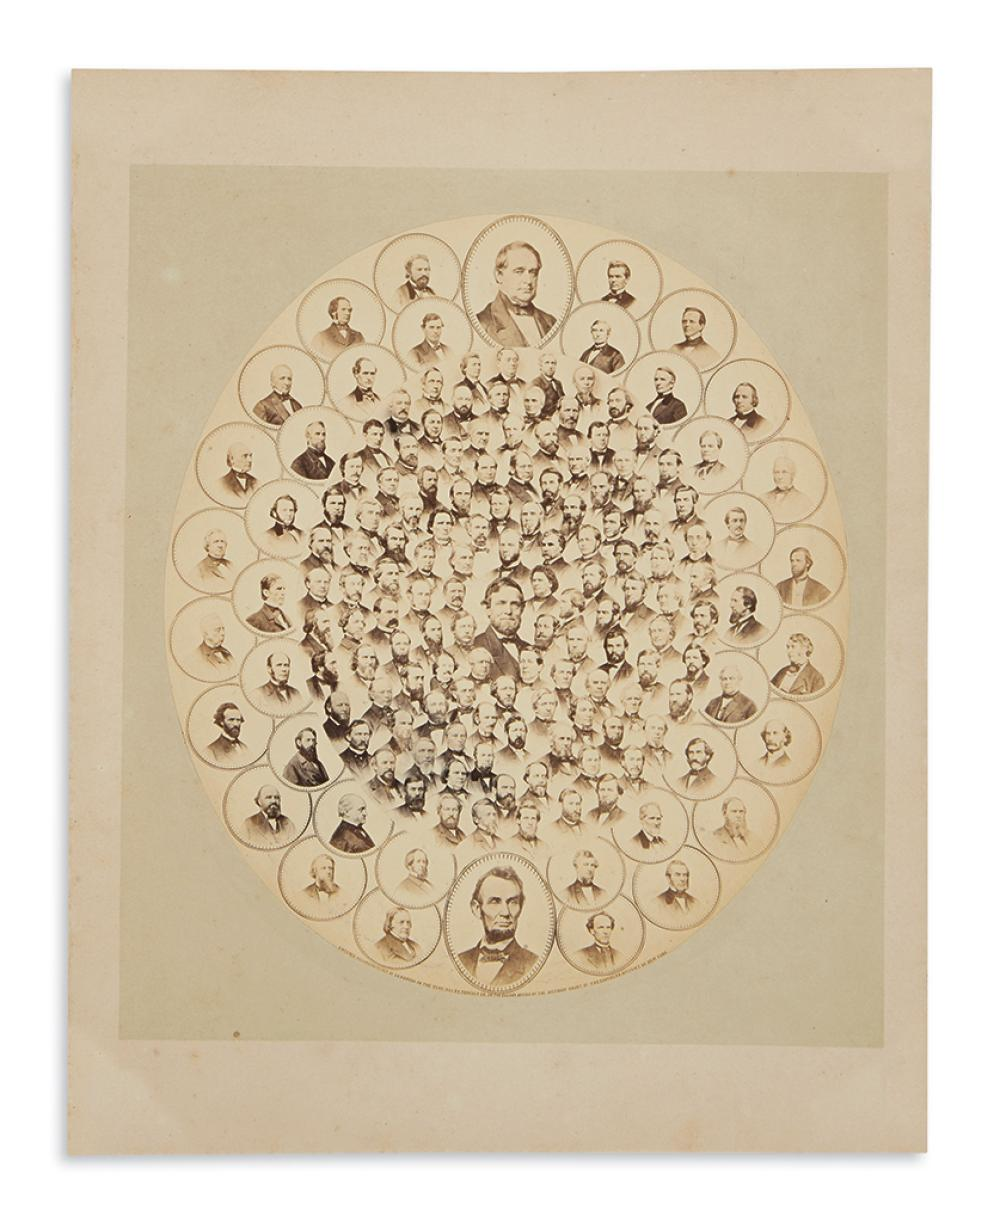 (SLAVERY AND ABOLITION.) Composite photograph of the signers of the 13th Amendment, which banned slavery.